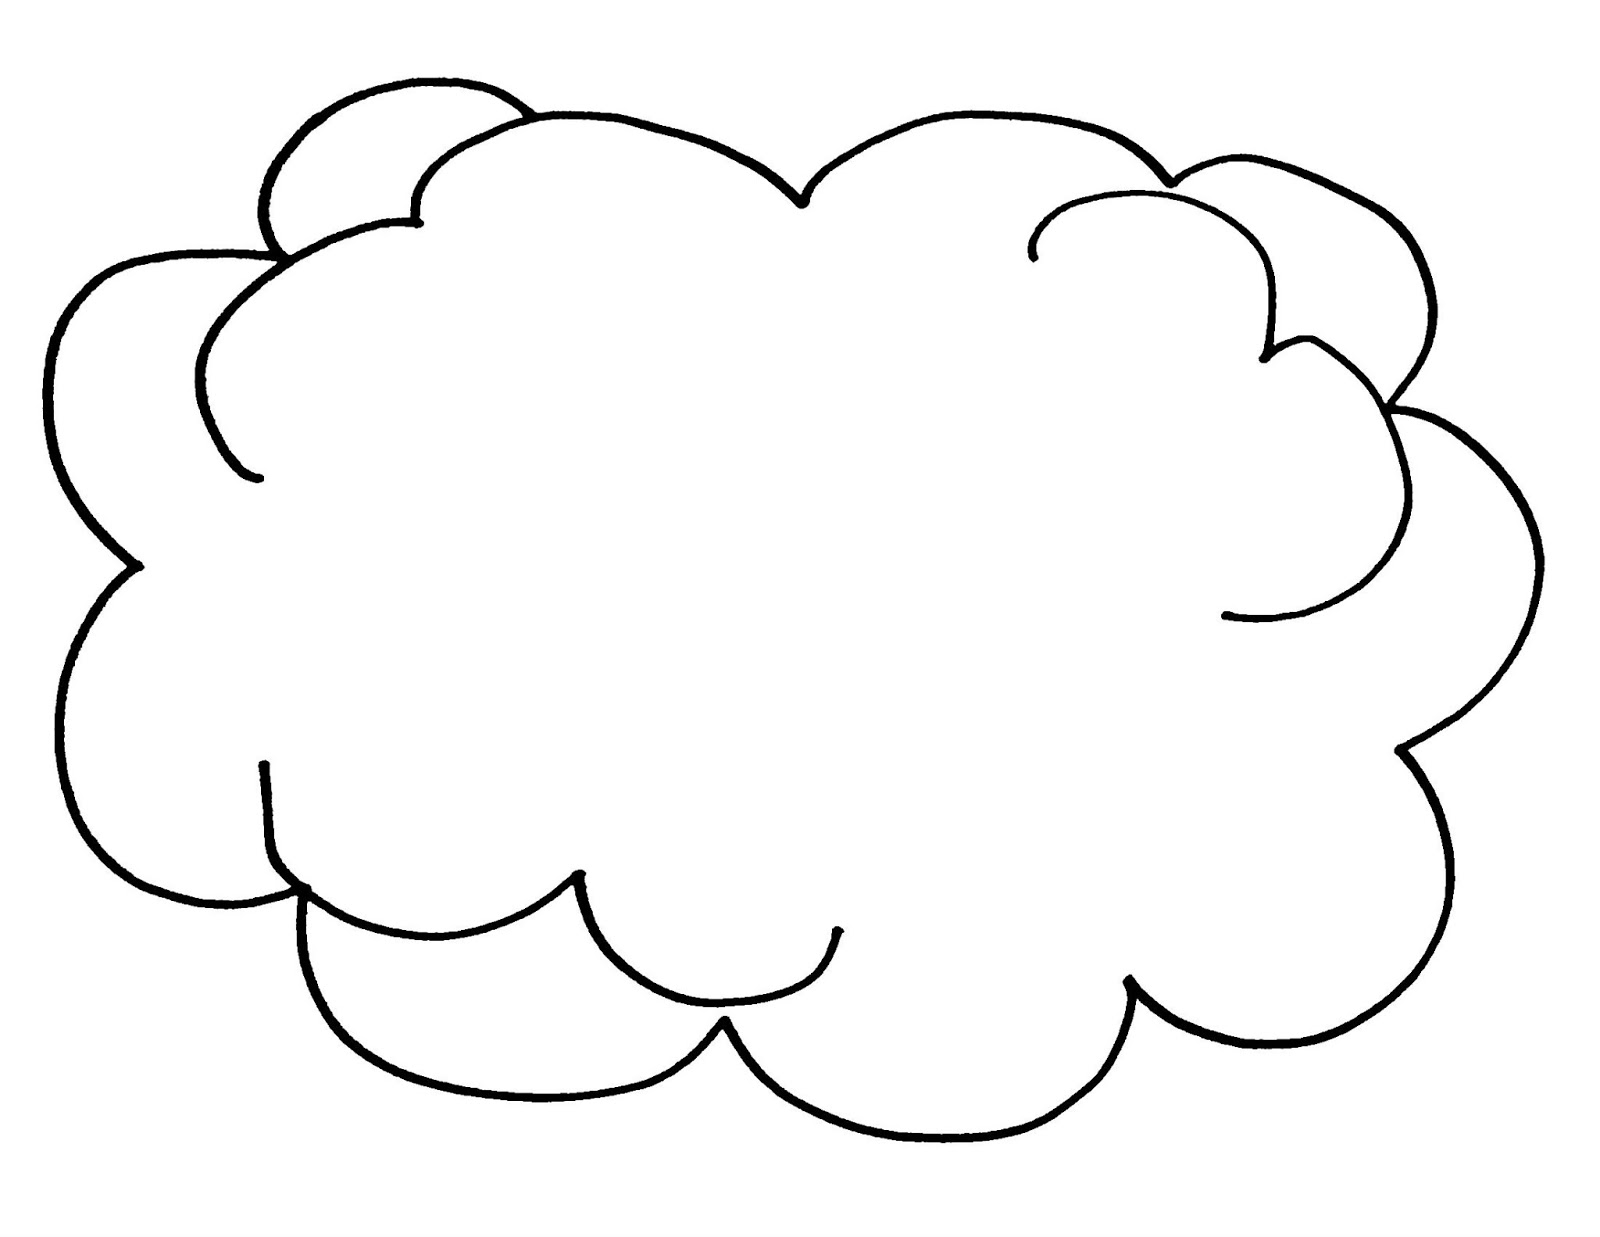 types of clouds coloring pages - photo#4